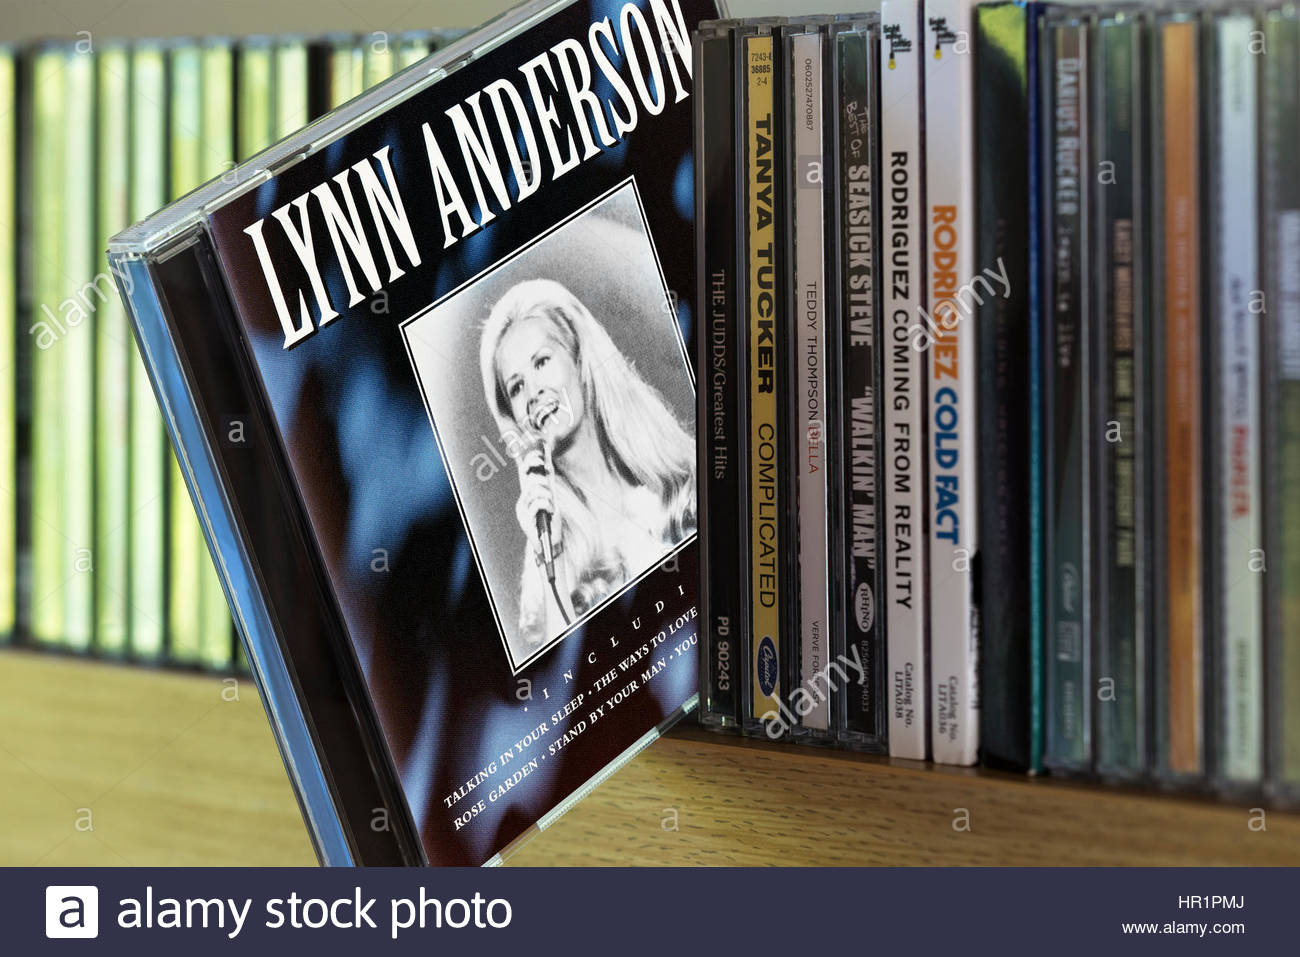 Lynn Anderson CD pulled out from among other CD's on a shelf , England - Stock Image